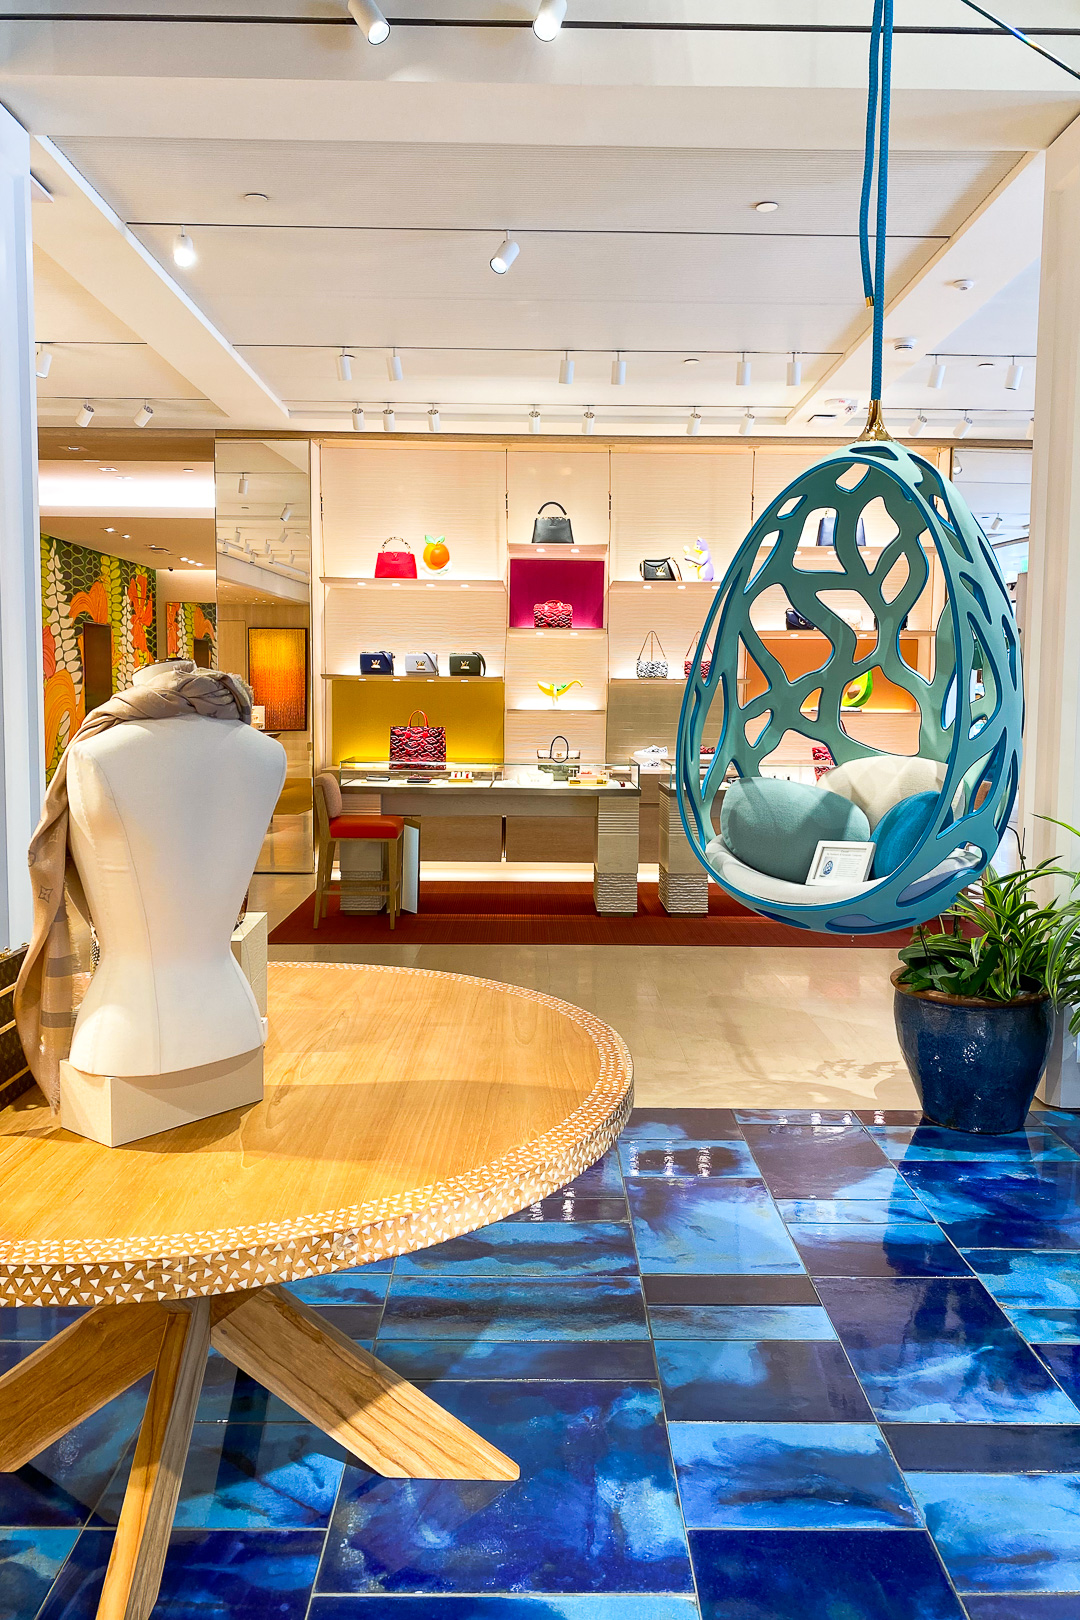 Inside the Louis Vuitton Waikiki store